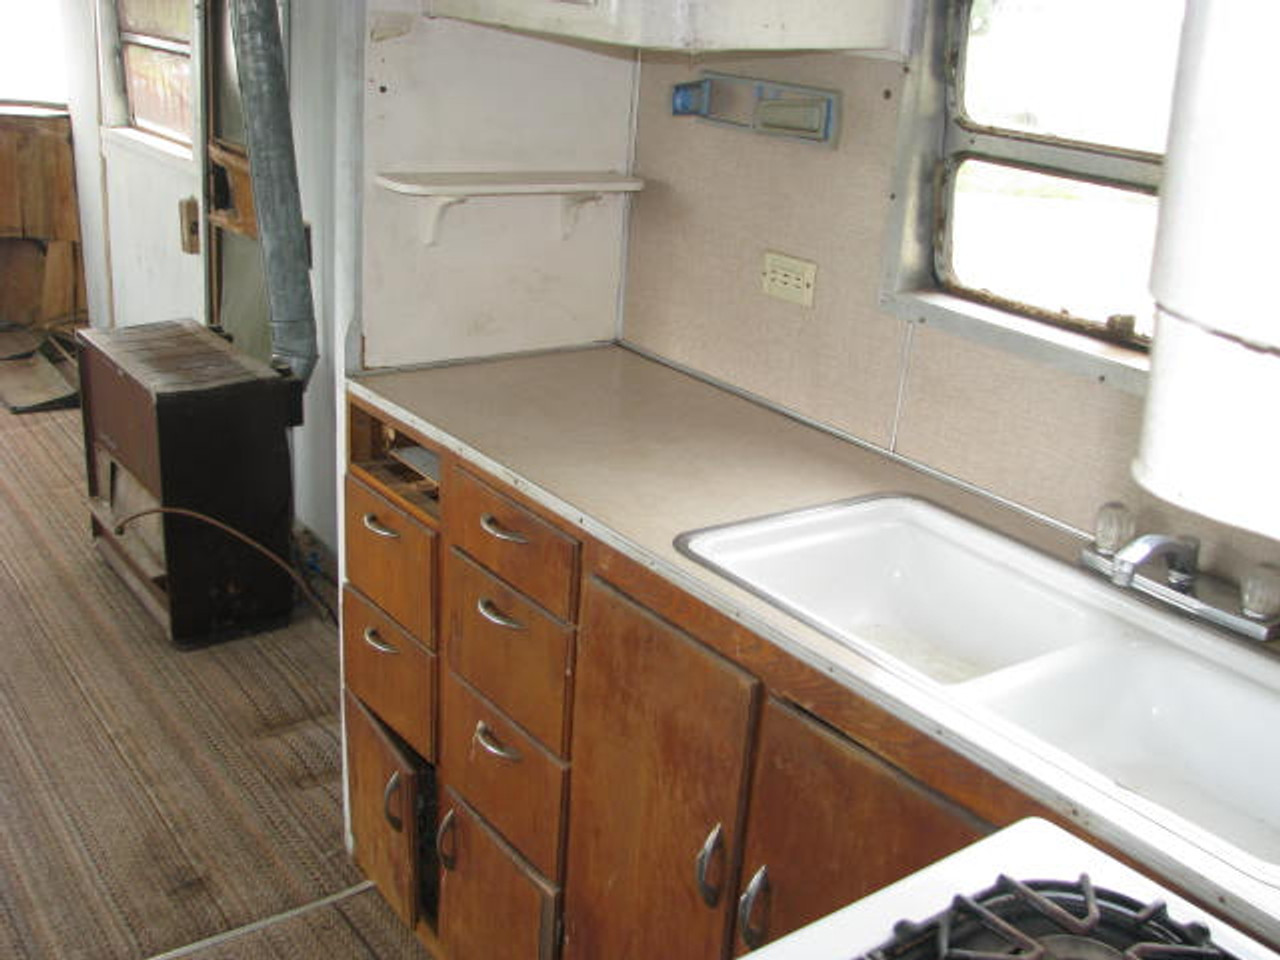 1951 Spartan 36 Ft. Imperial Mansion #A1393  (SOLD S.F.)